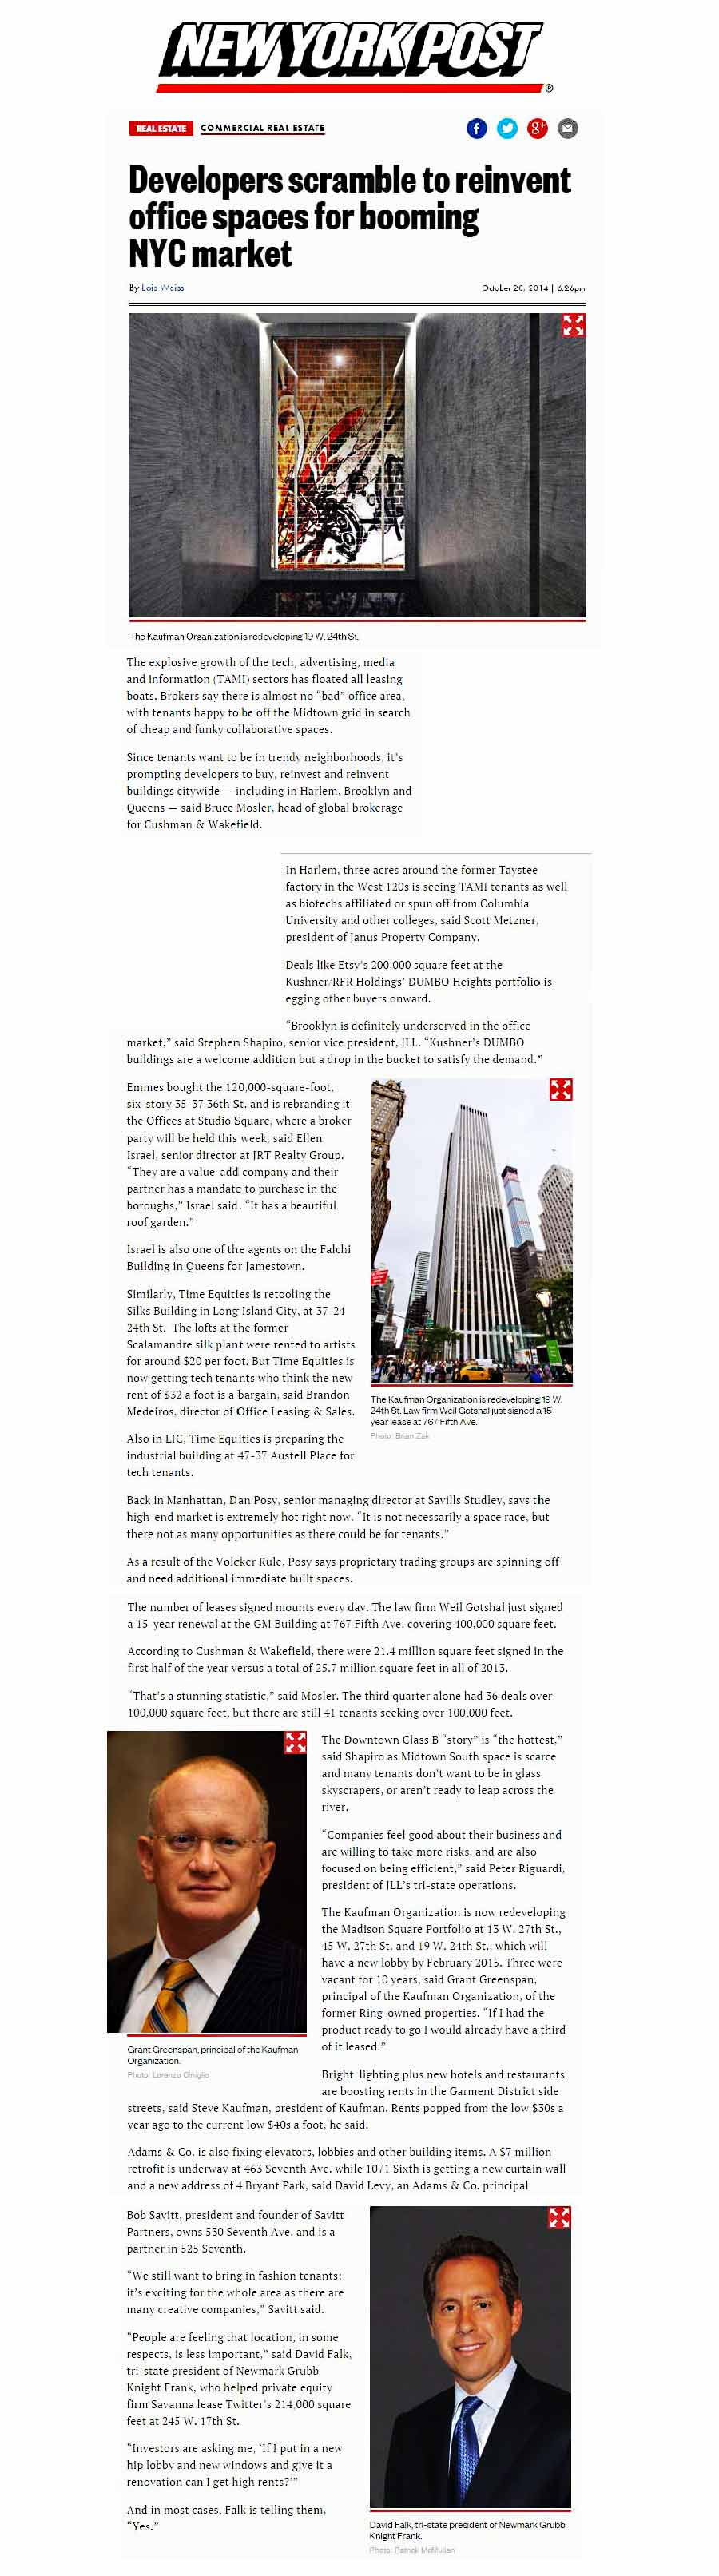 New-York-Post,-Developers-scramble-to-reinvent-office-spaces-for-booming-NYC-market-(online)---10.21